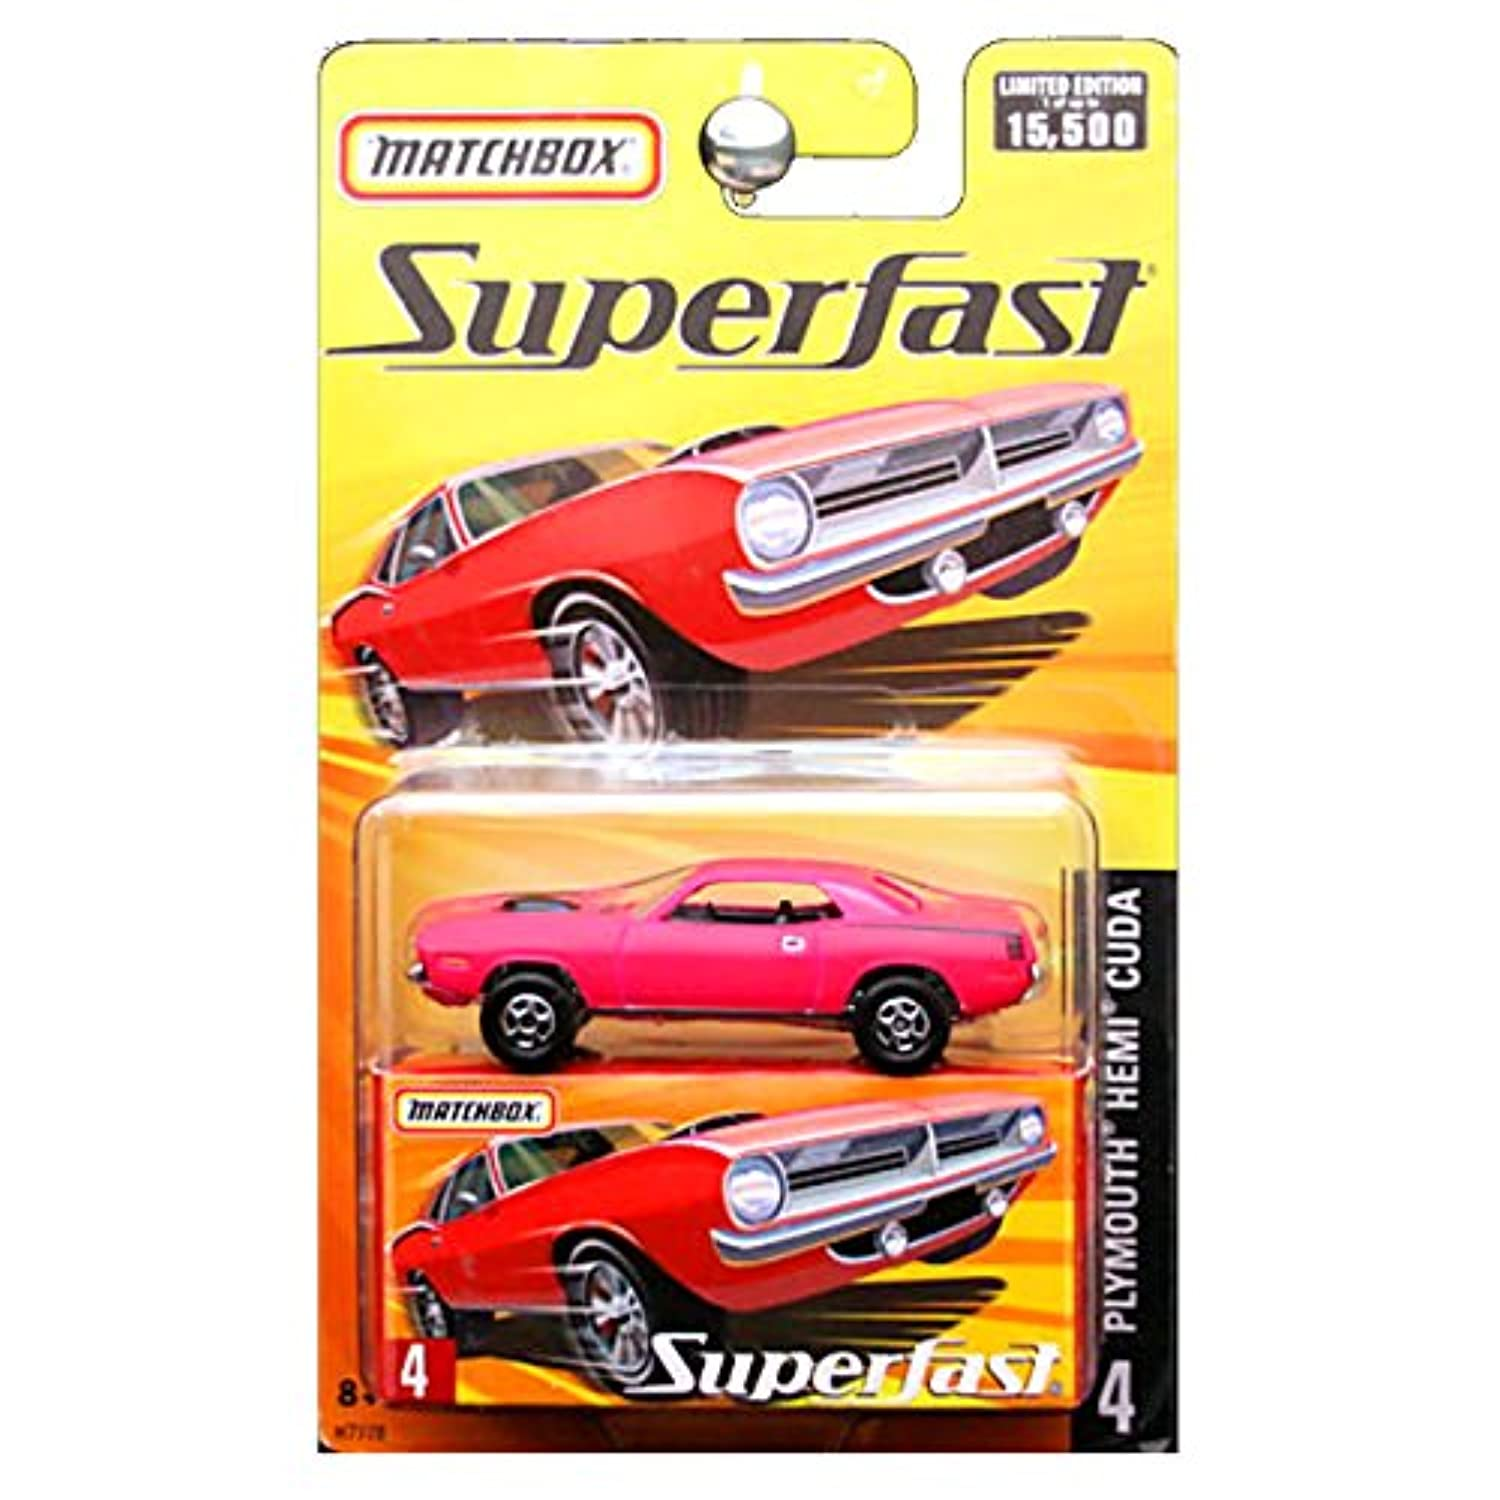 2005 Matchbox Superfast Plymouth Hemi Cuda Bright Pink #4 by Mattel